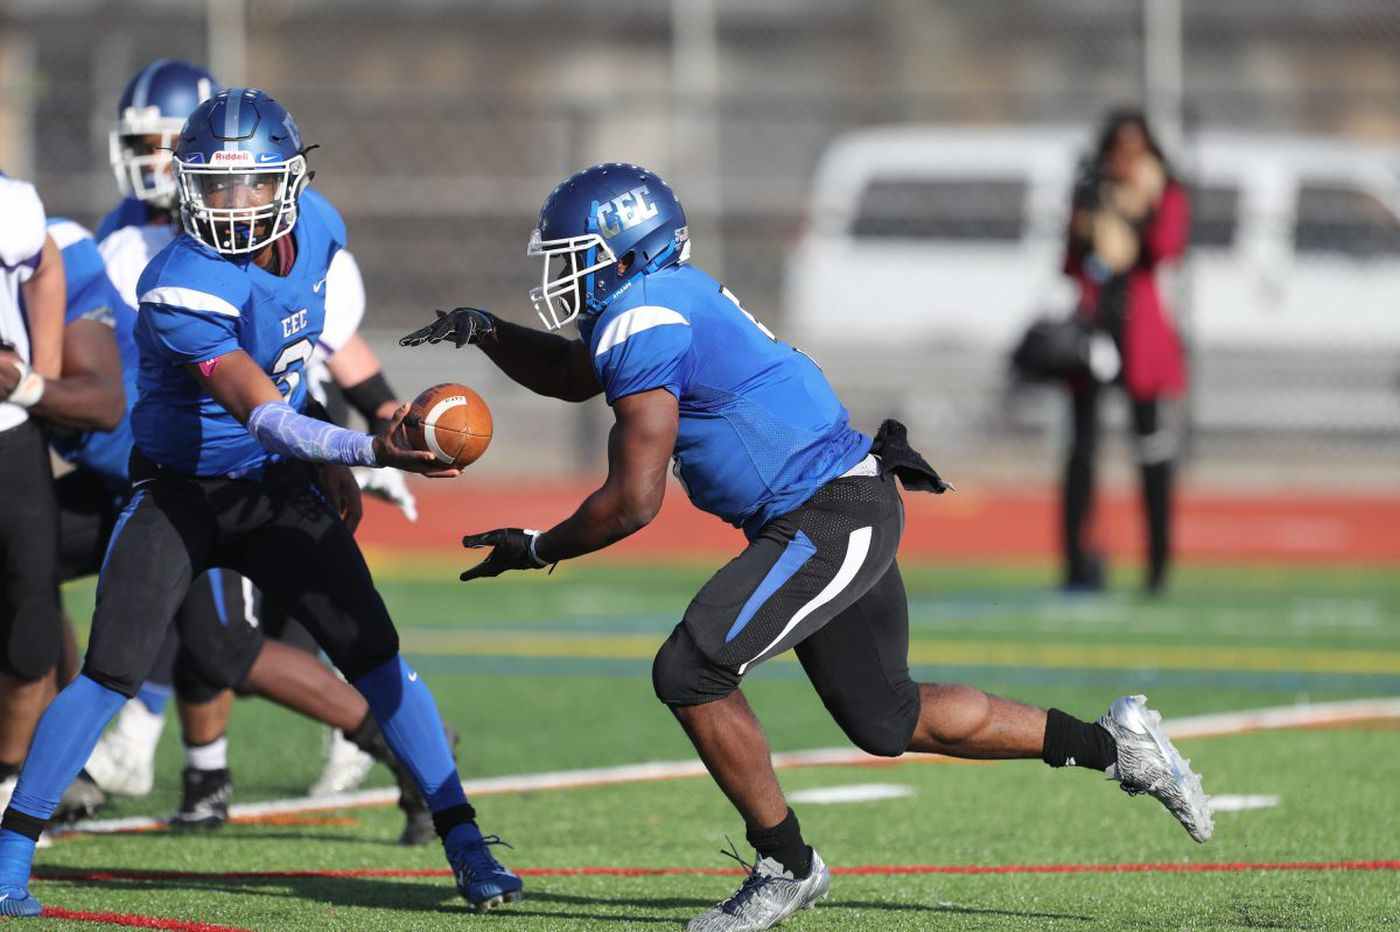 Patrick Garwo leads Conwell-Egan to 3A semifinals